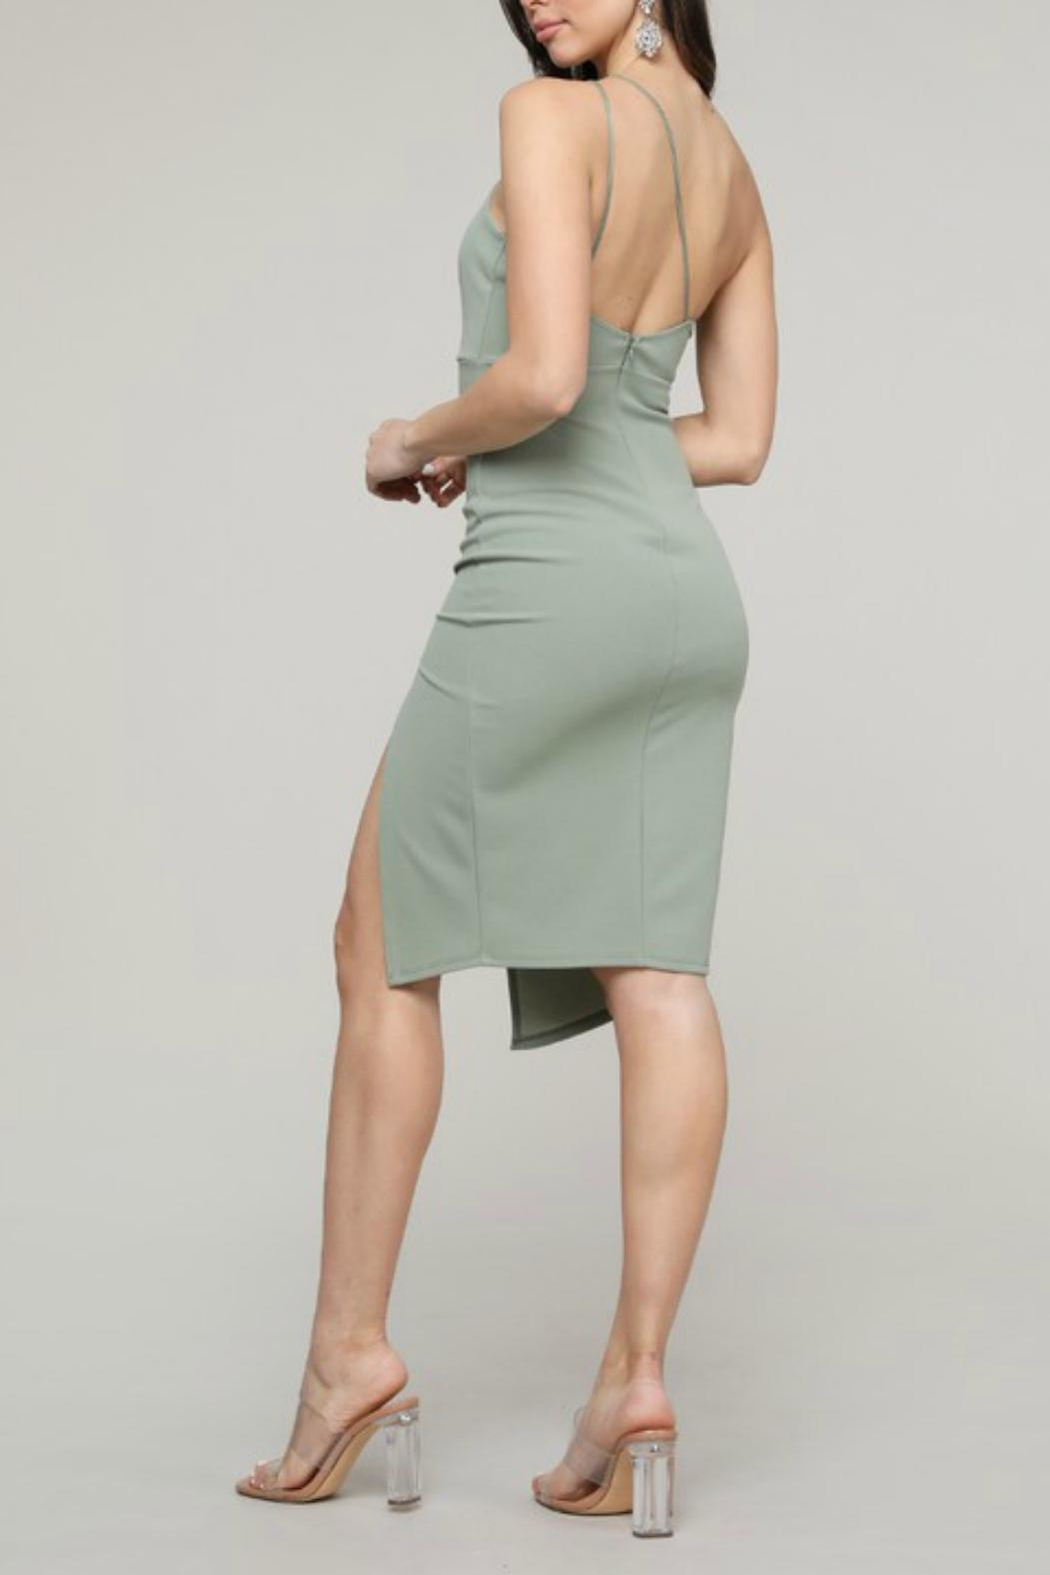 Pretty Little Things Asymmetrical Midi Dress - Side Cropped Image